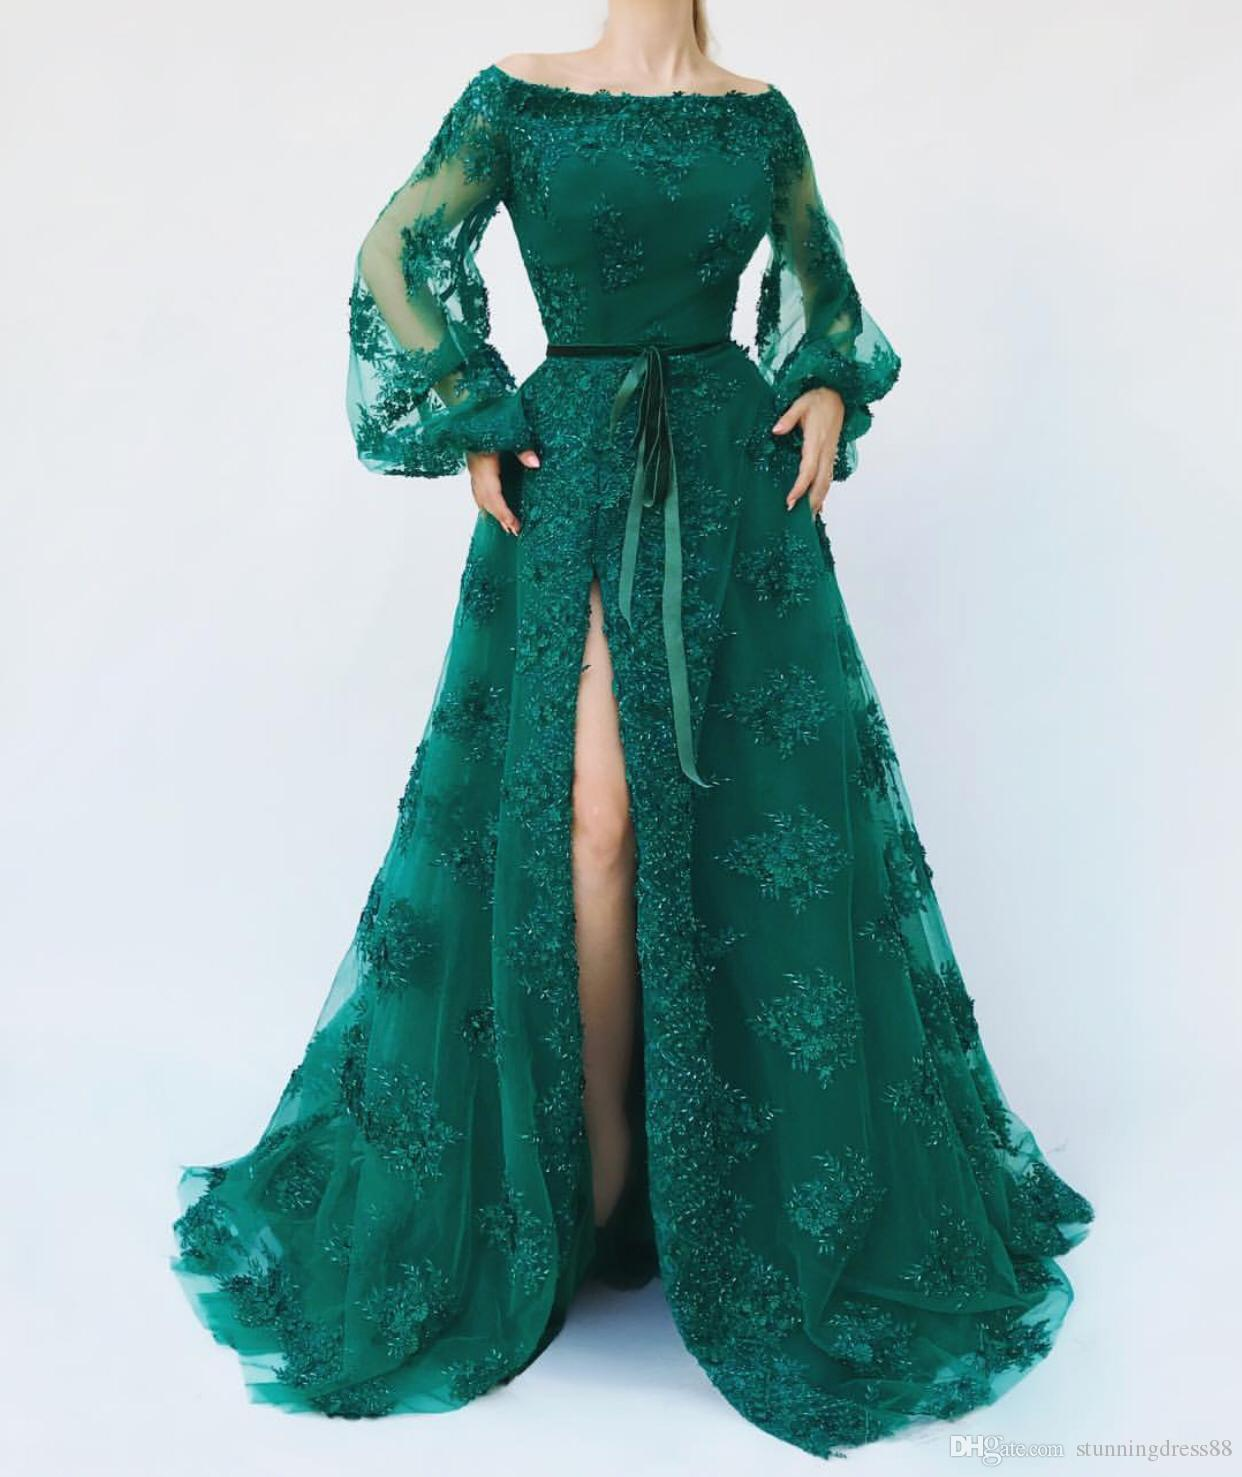 African Style 2020 Prom Dress Off the shoulder Cheap Emerald Green Scoop Neck Illusion Juliet Long Sleeves High Slits Lace Applique Sequins